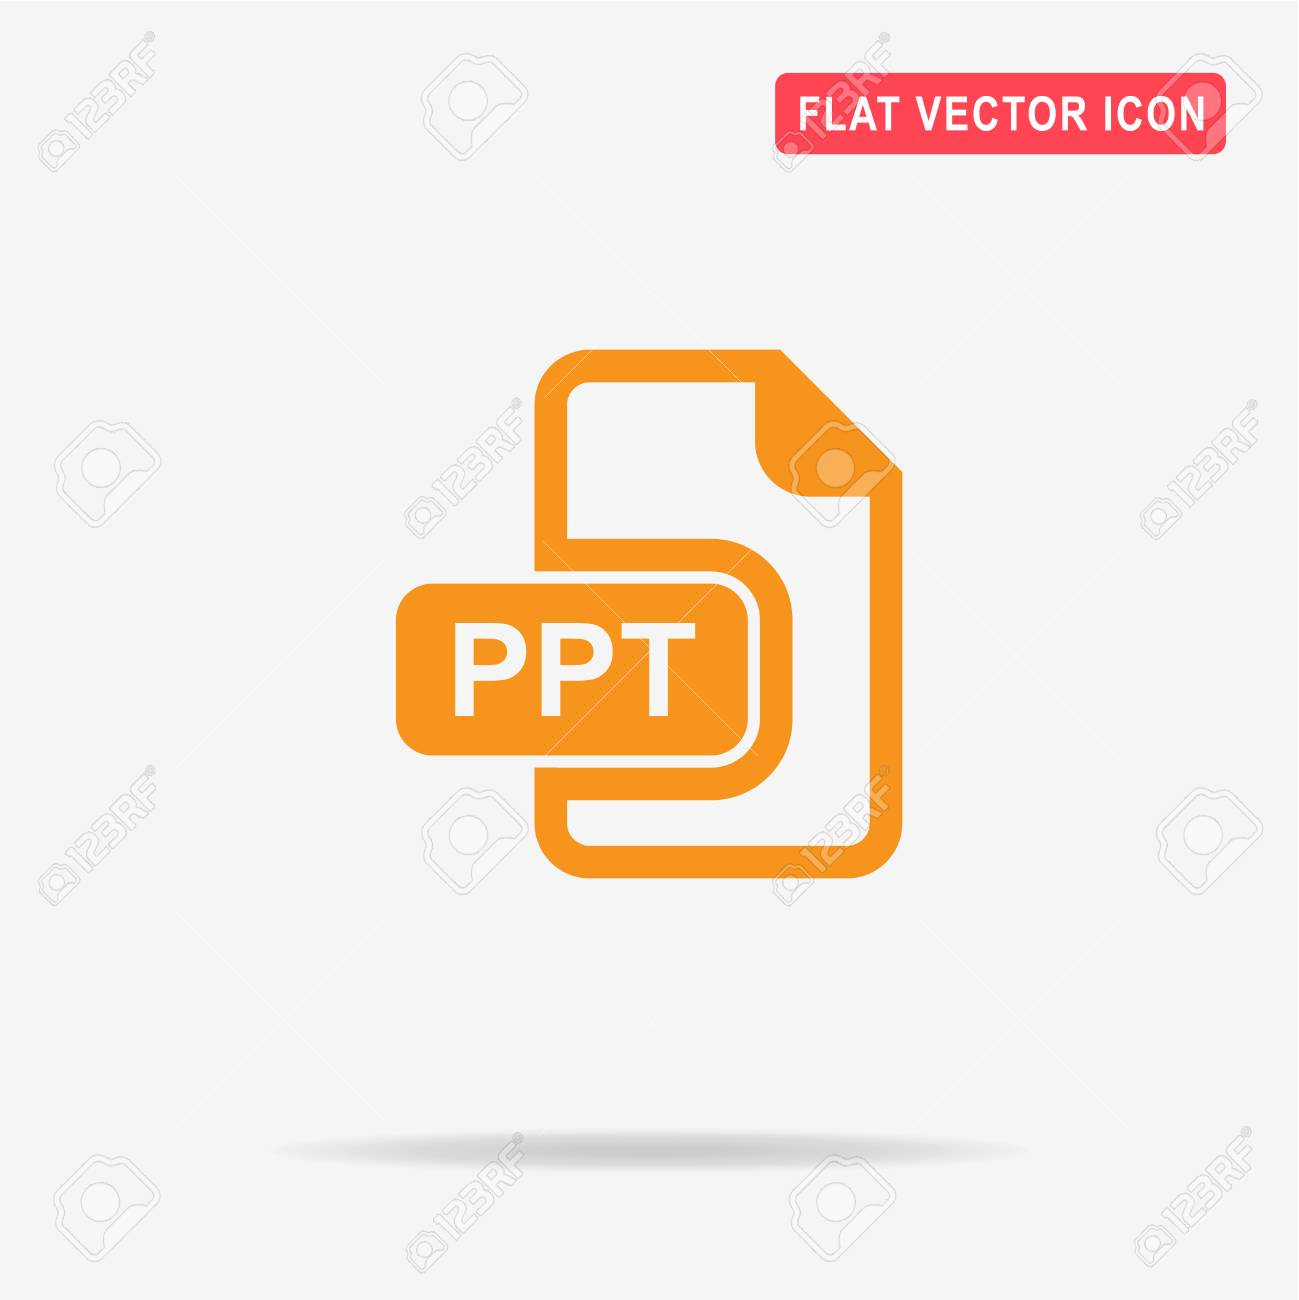 ppt icon vector concept illustration for design royalty free